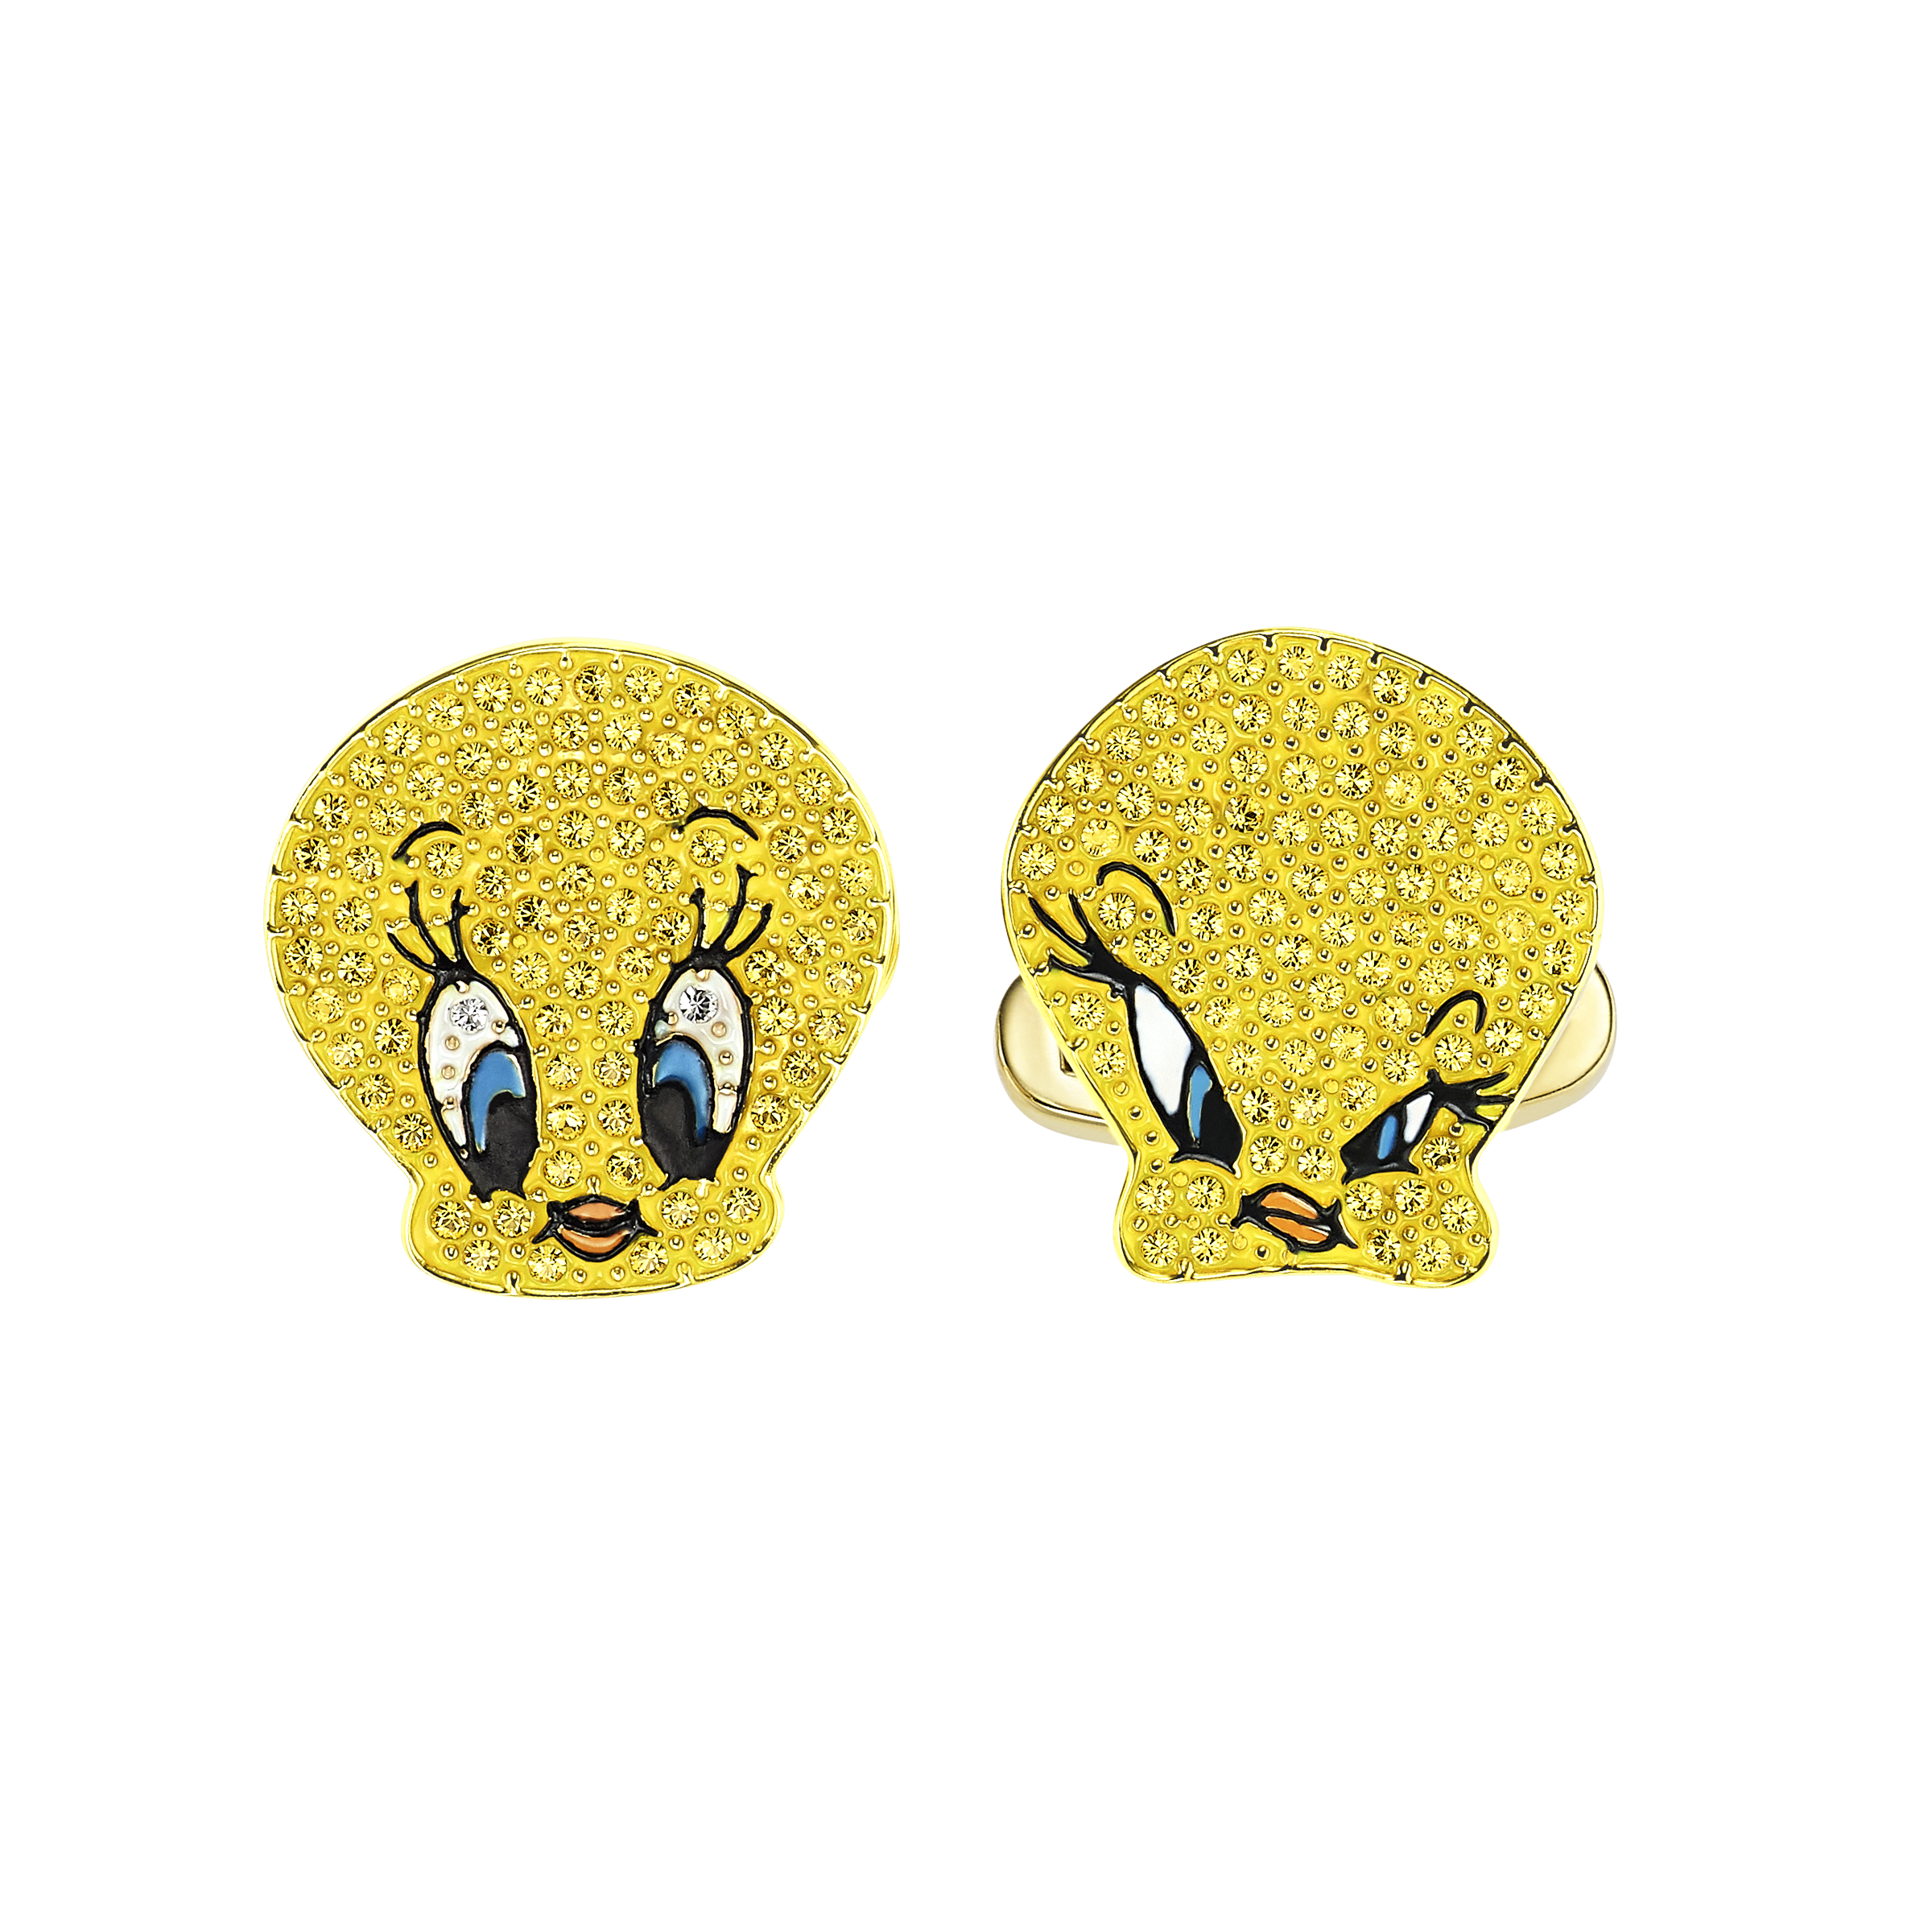 Looney Tunes Tweety Cuff Links, Yellow, Gold-tone plated